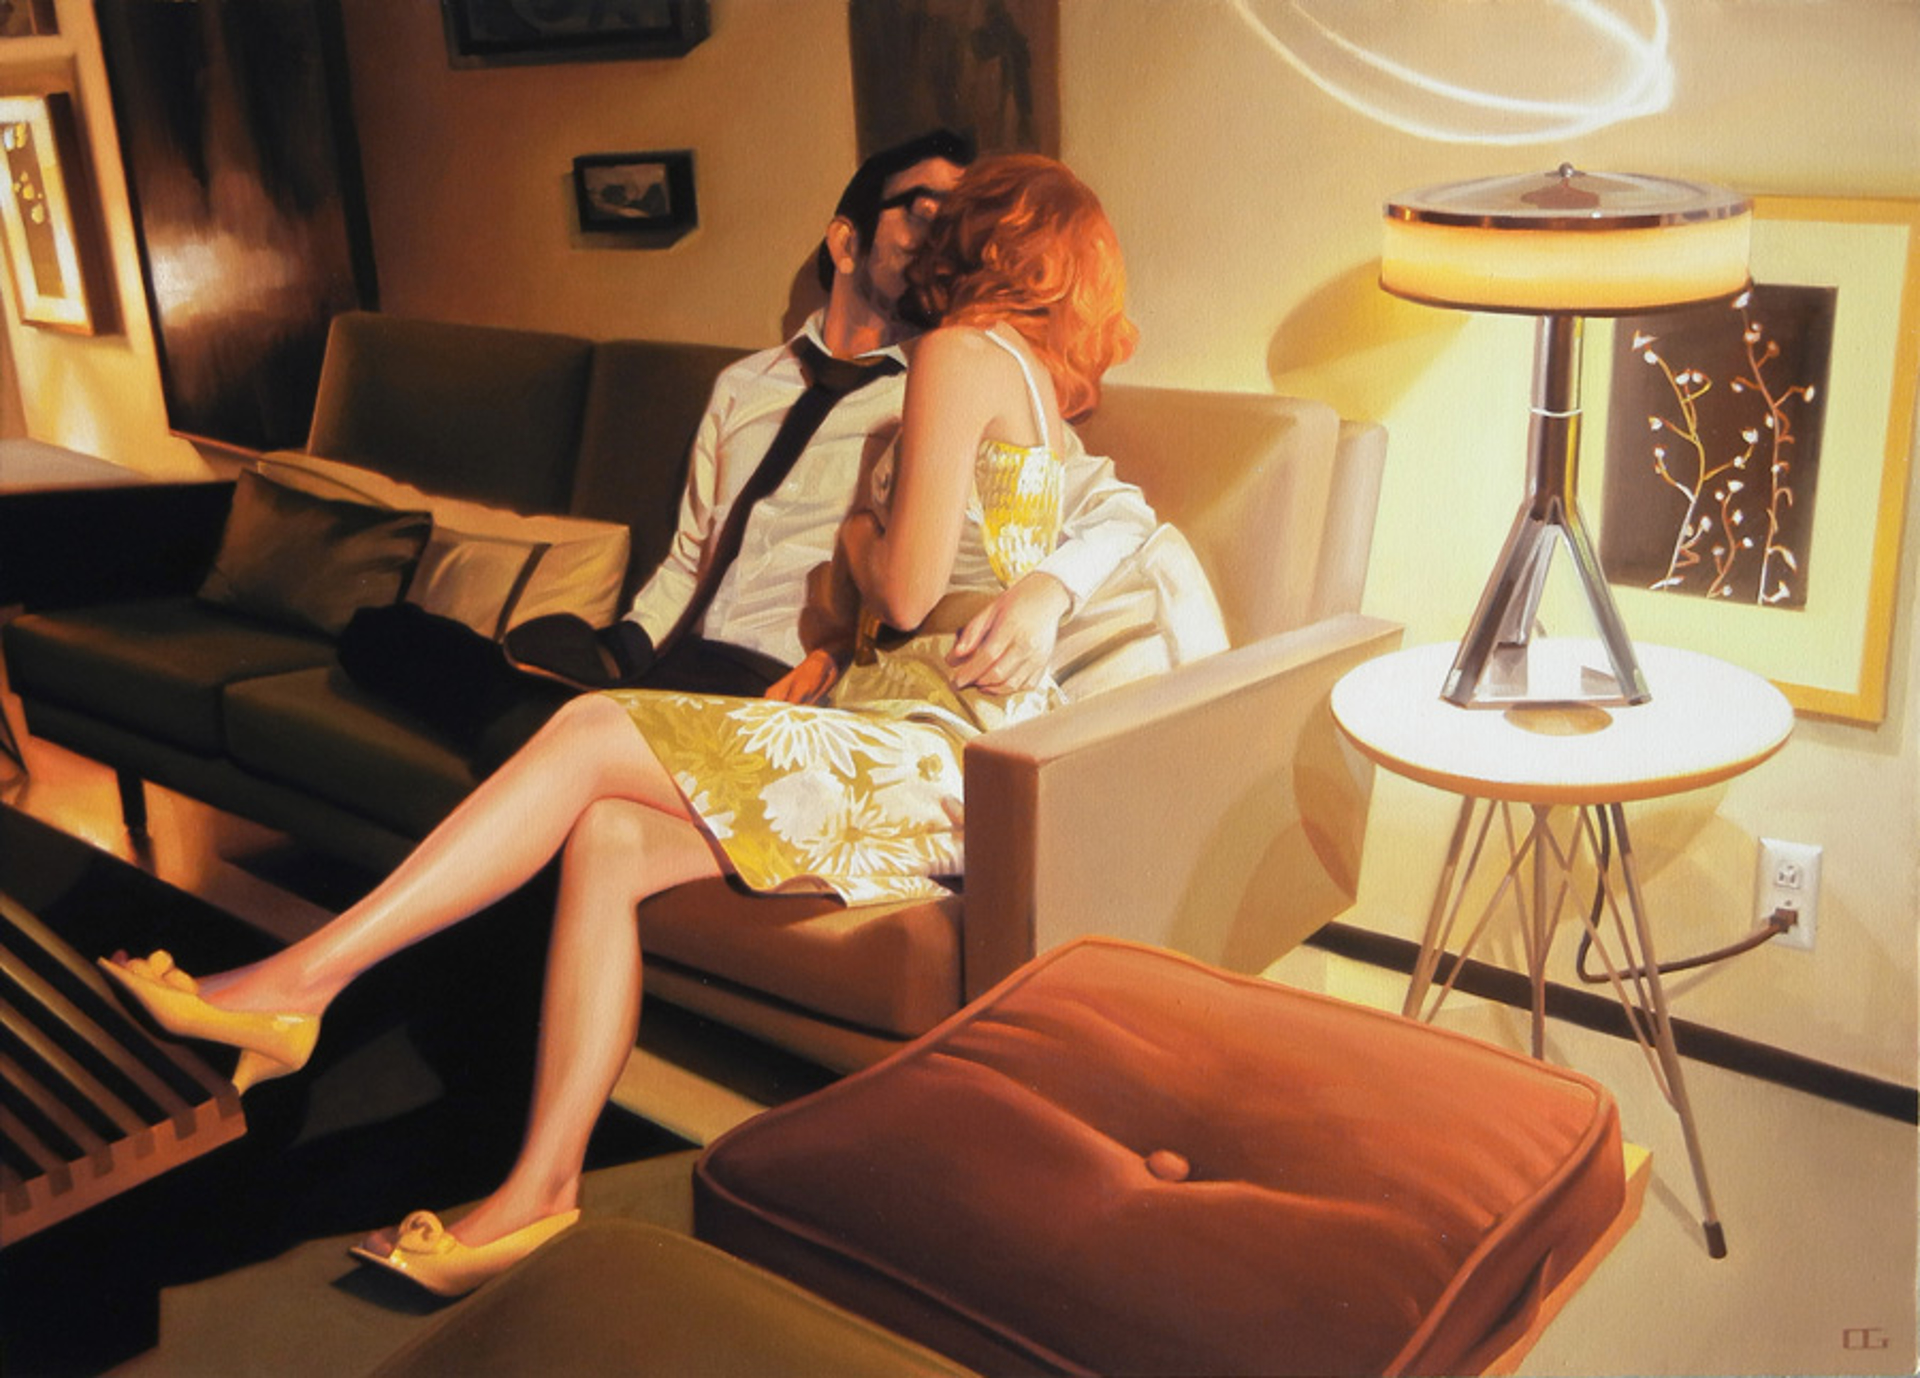 The Kissers (S/N) by Carrie Graber